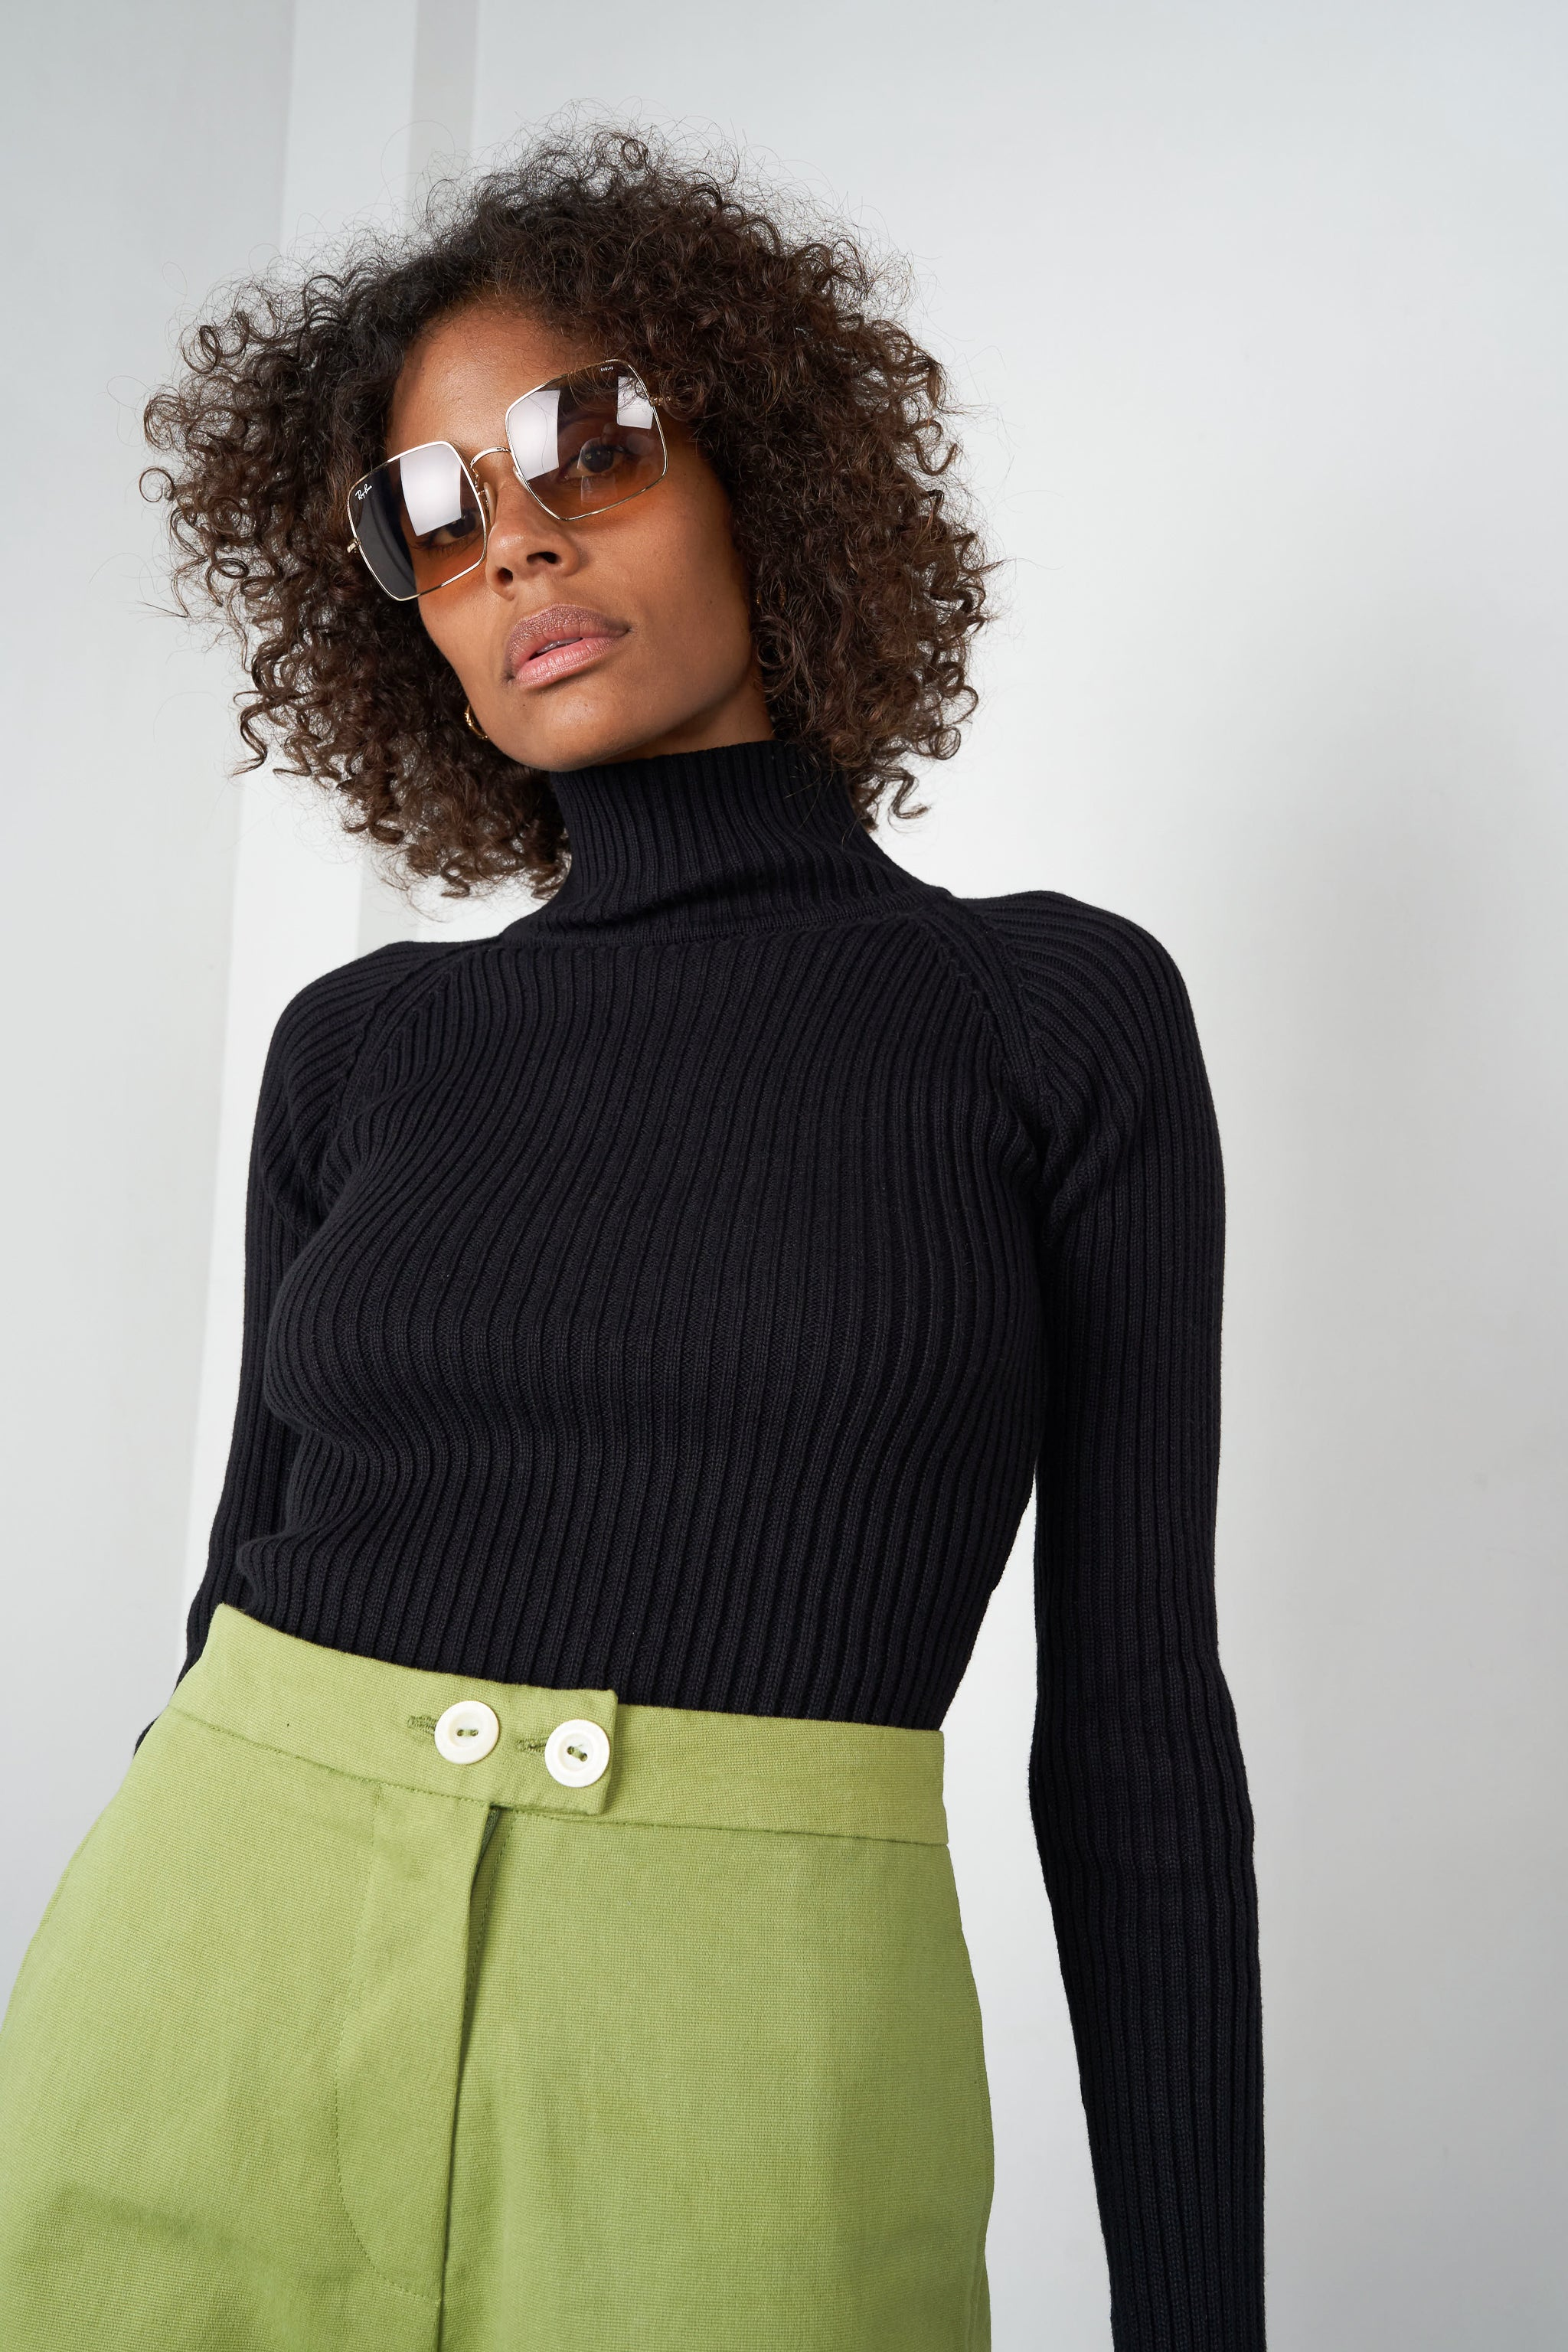 Arthur Apparel AW20 Womenswear Australian Fashion Ribbed Turtleneck Top Black